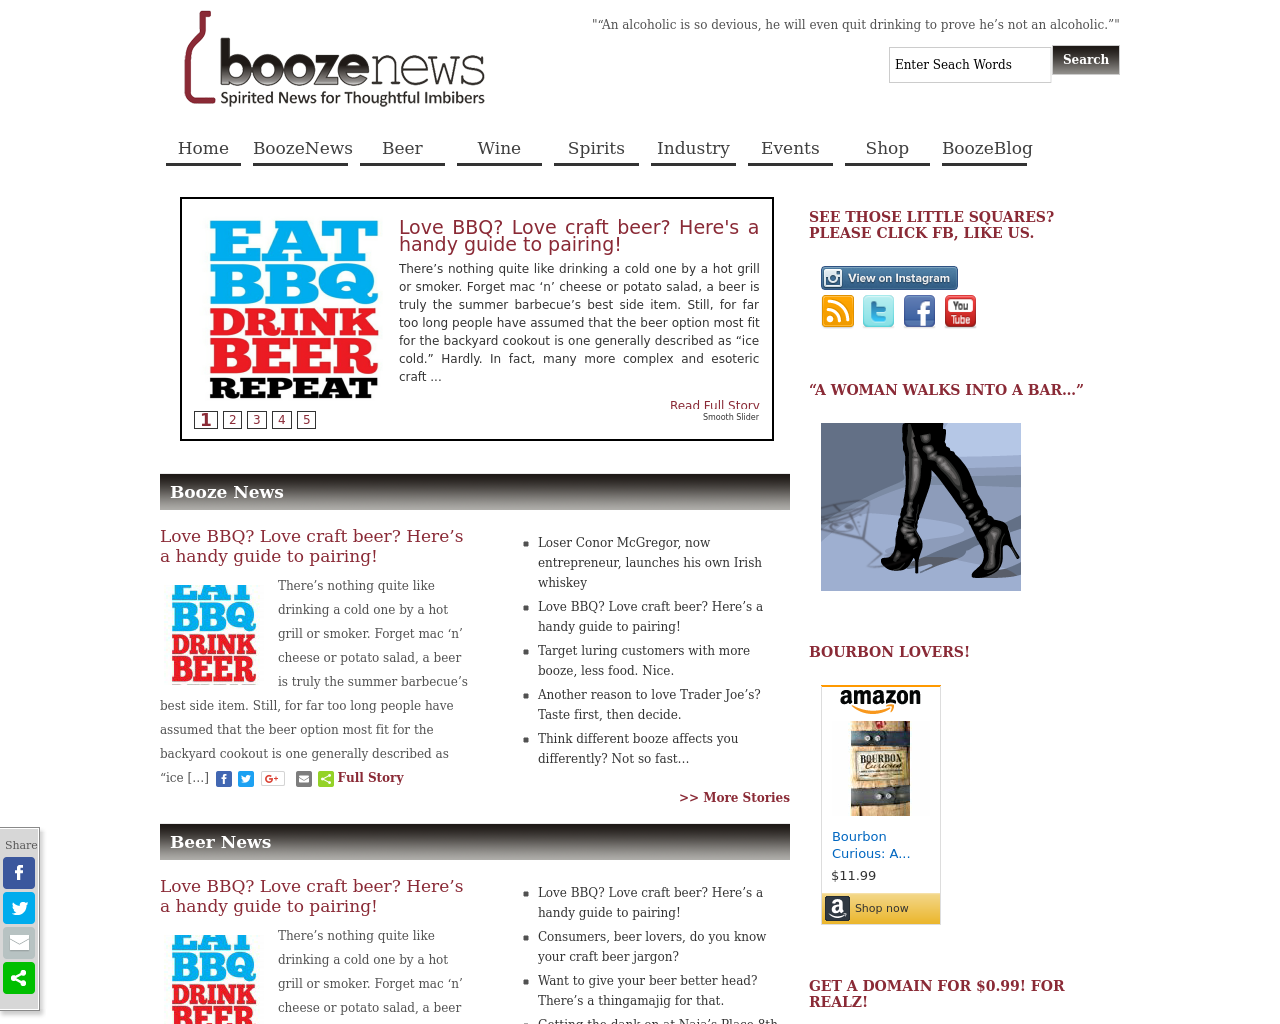 boozenews-Advertising-Reviews-Pricing